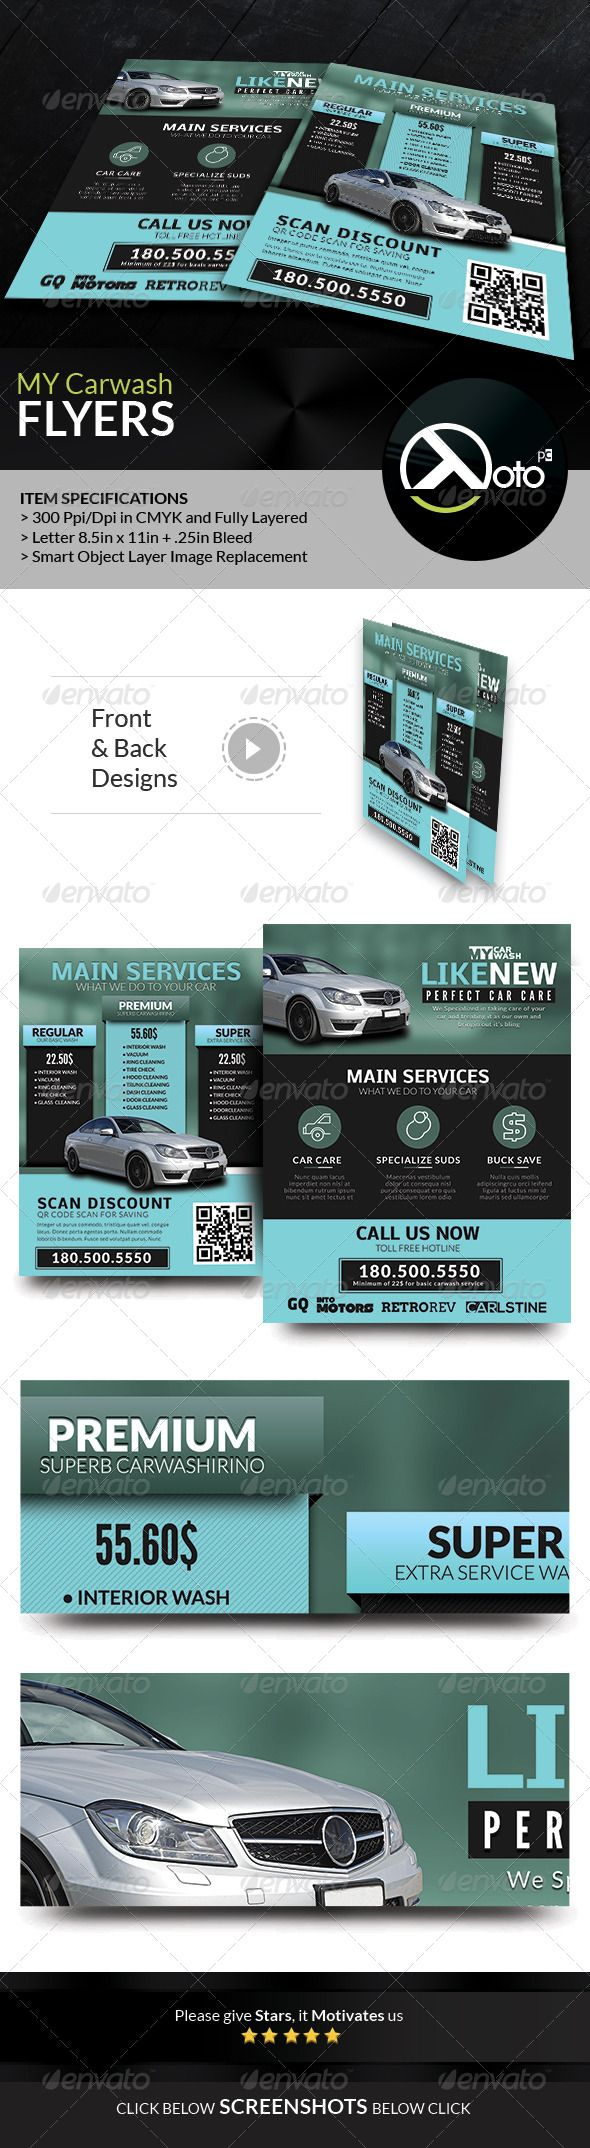 MY Automobile Carwash Service Flyers